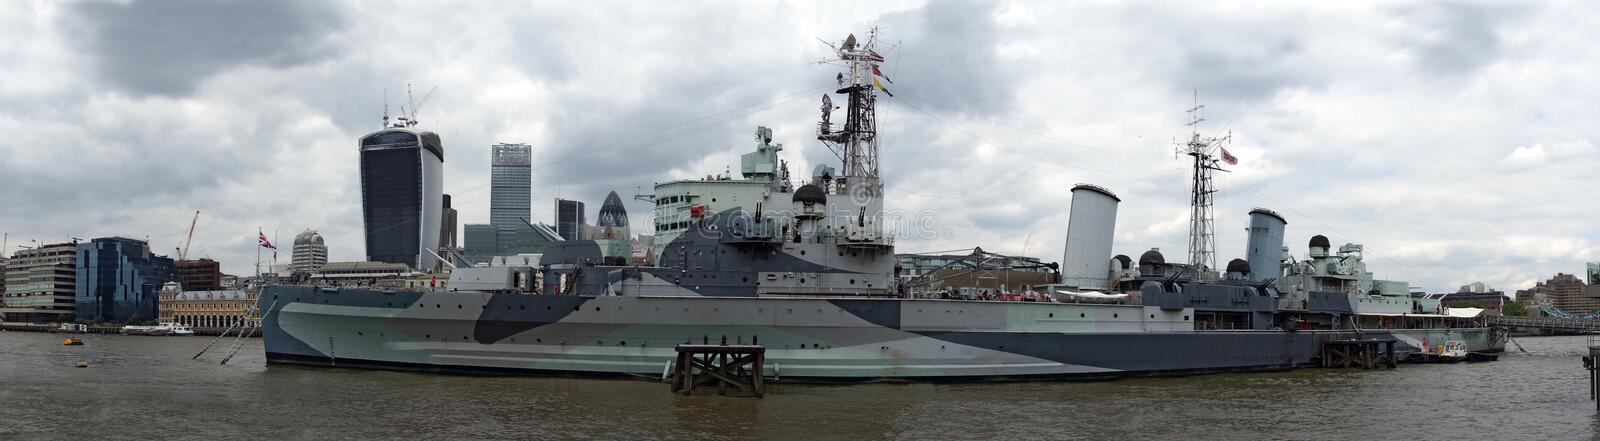 The HMS Belfast stock images